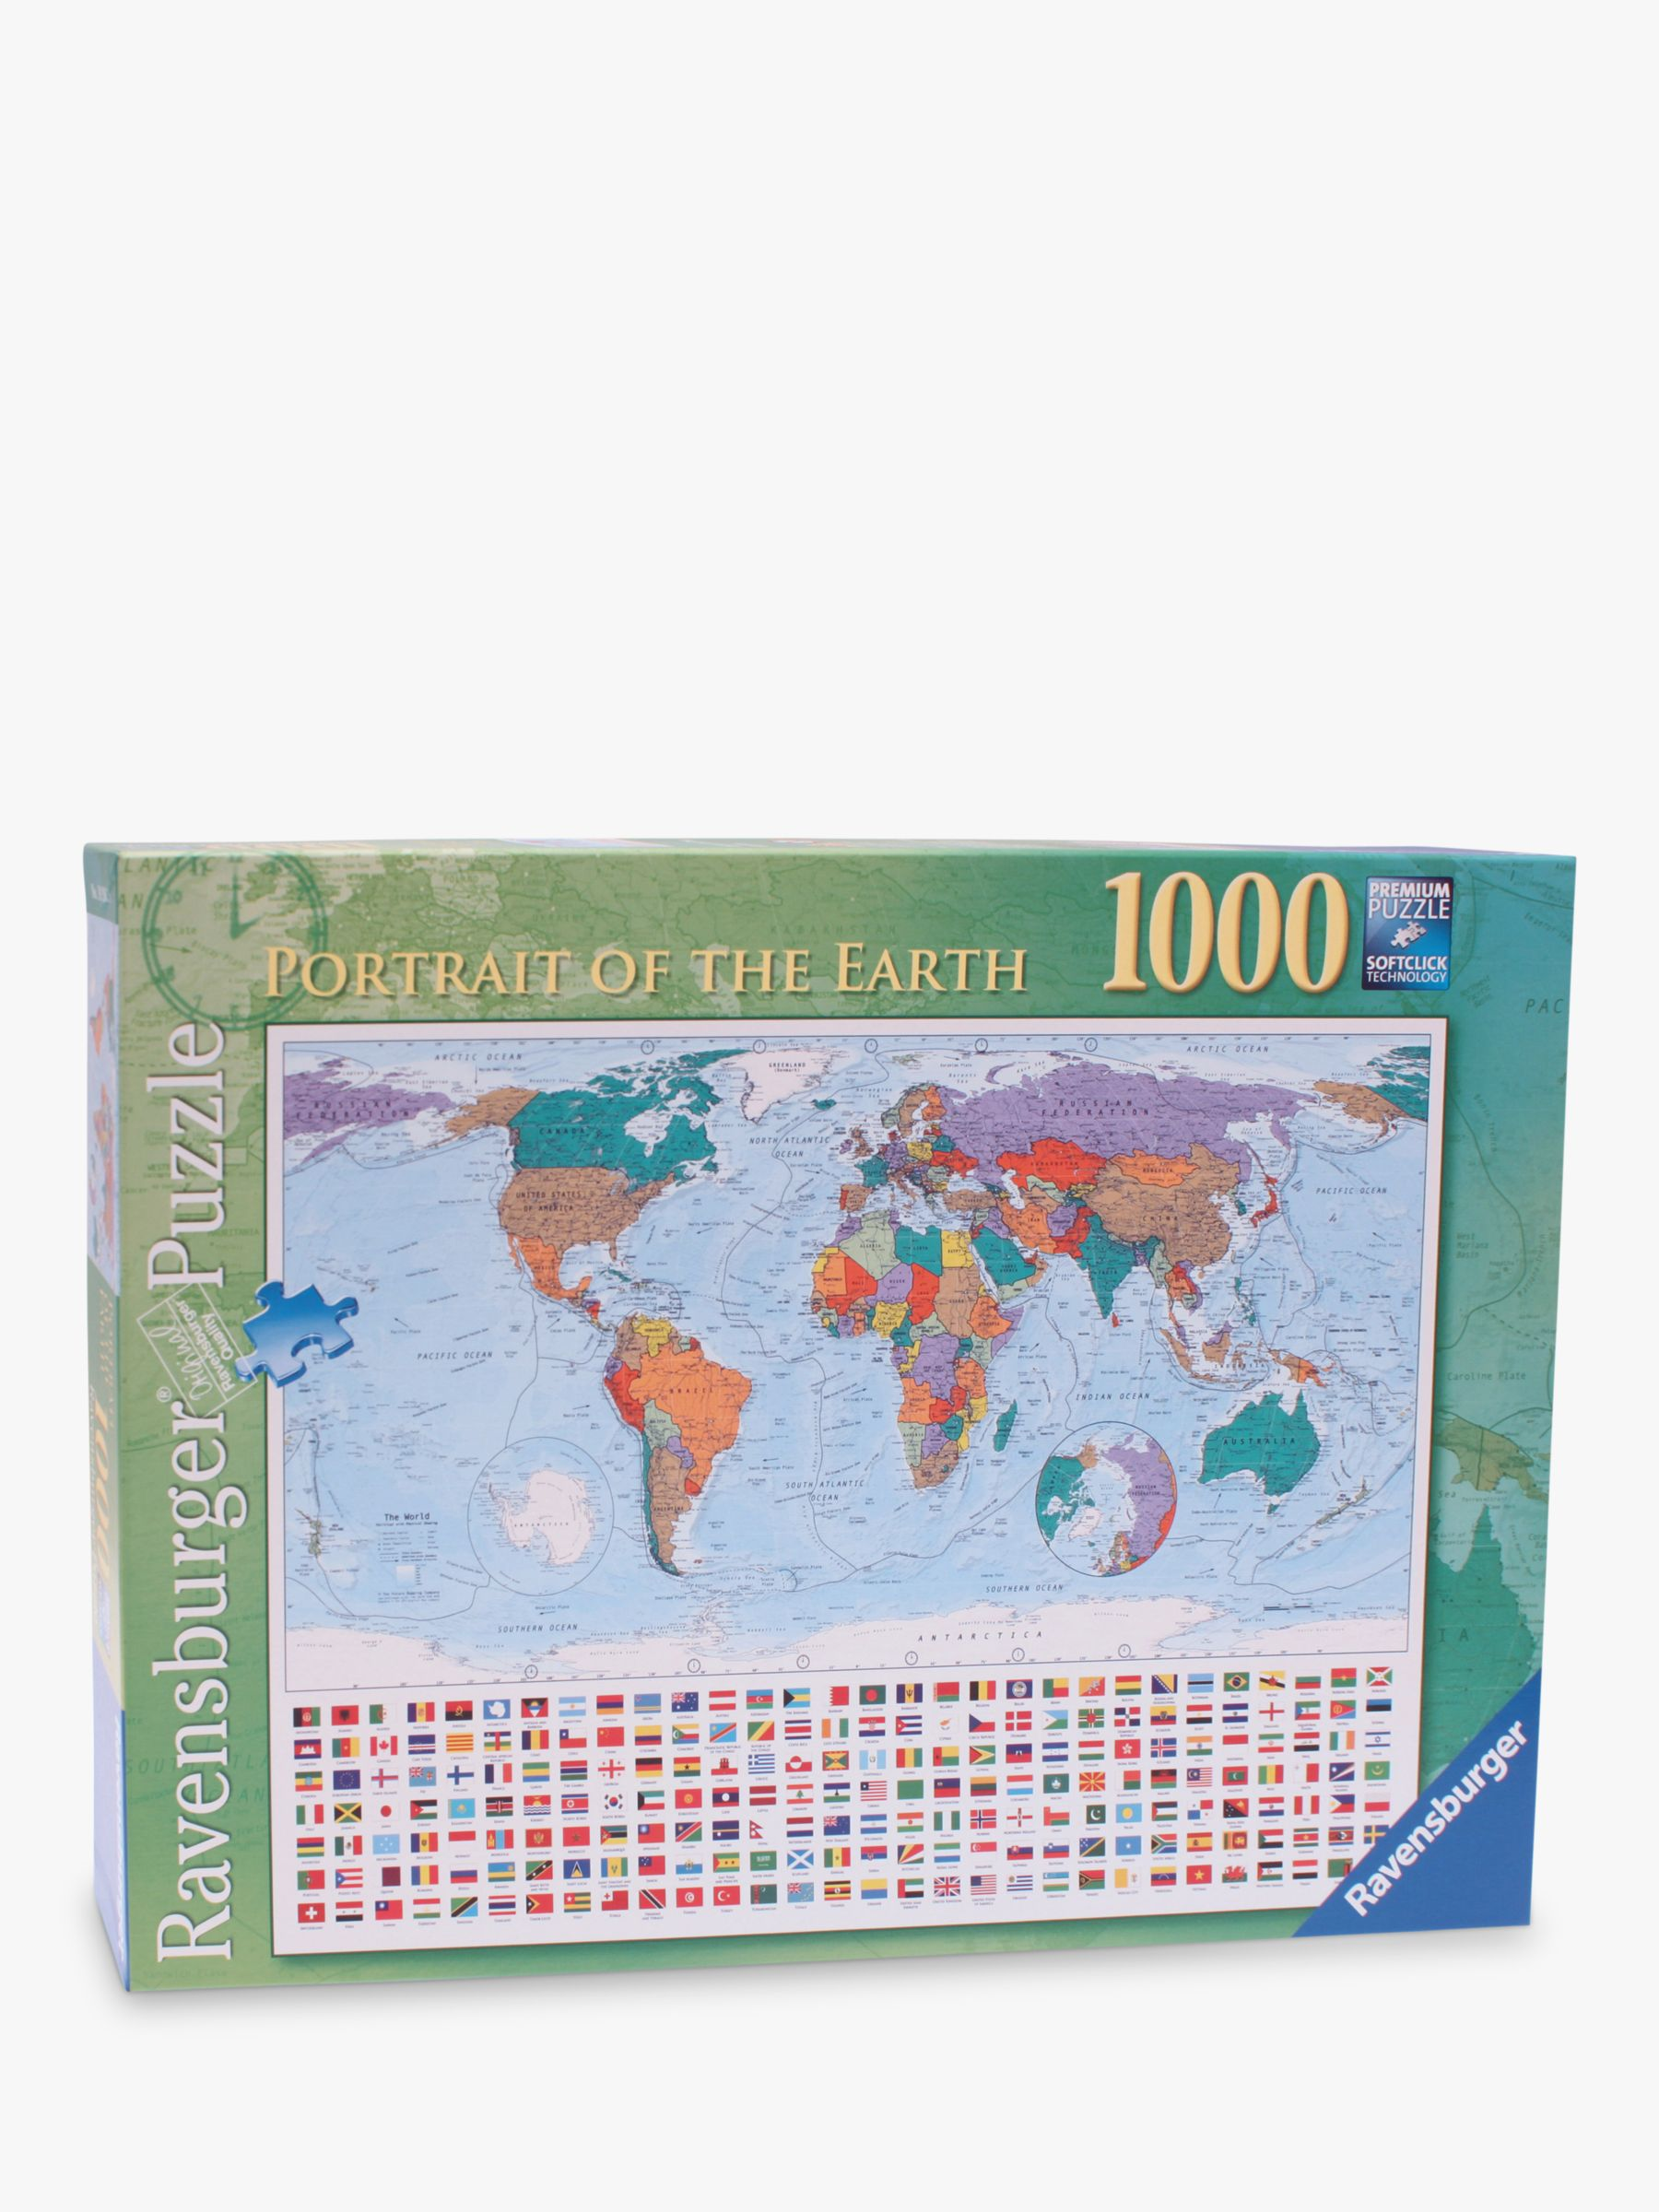 Ravensburger portrait of the earth 1000 piece jigsaw puzzle at john ravensburger portrait of the earth 1000 piece jigsaw puzzle at john lewis partners gumiabroncs Images